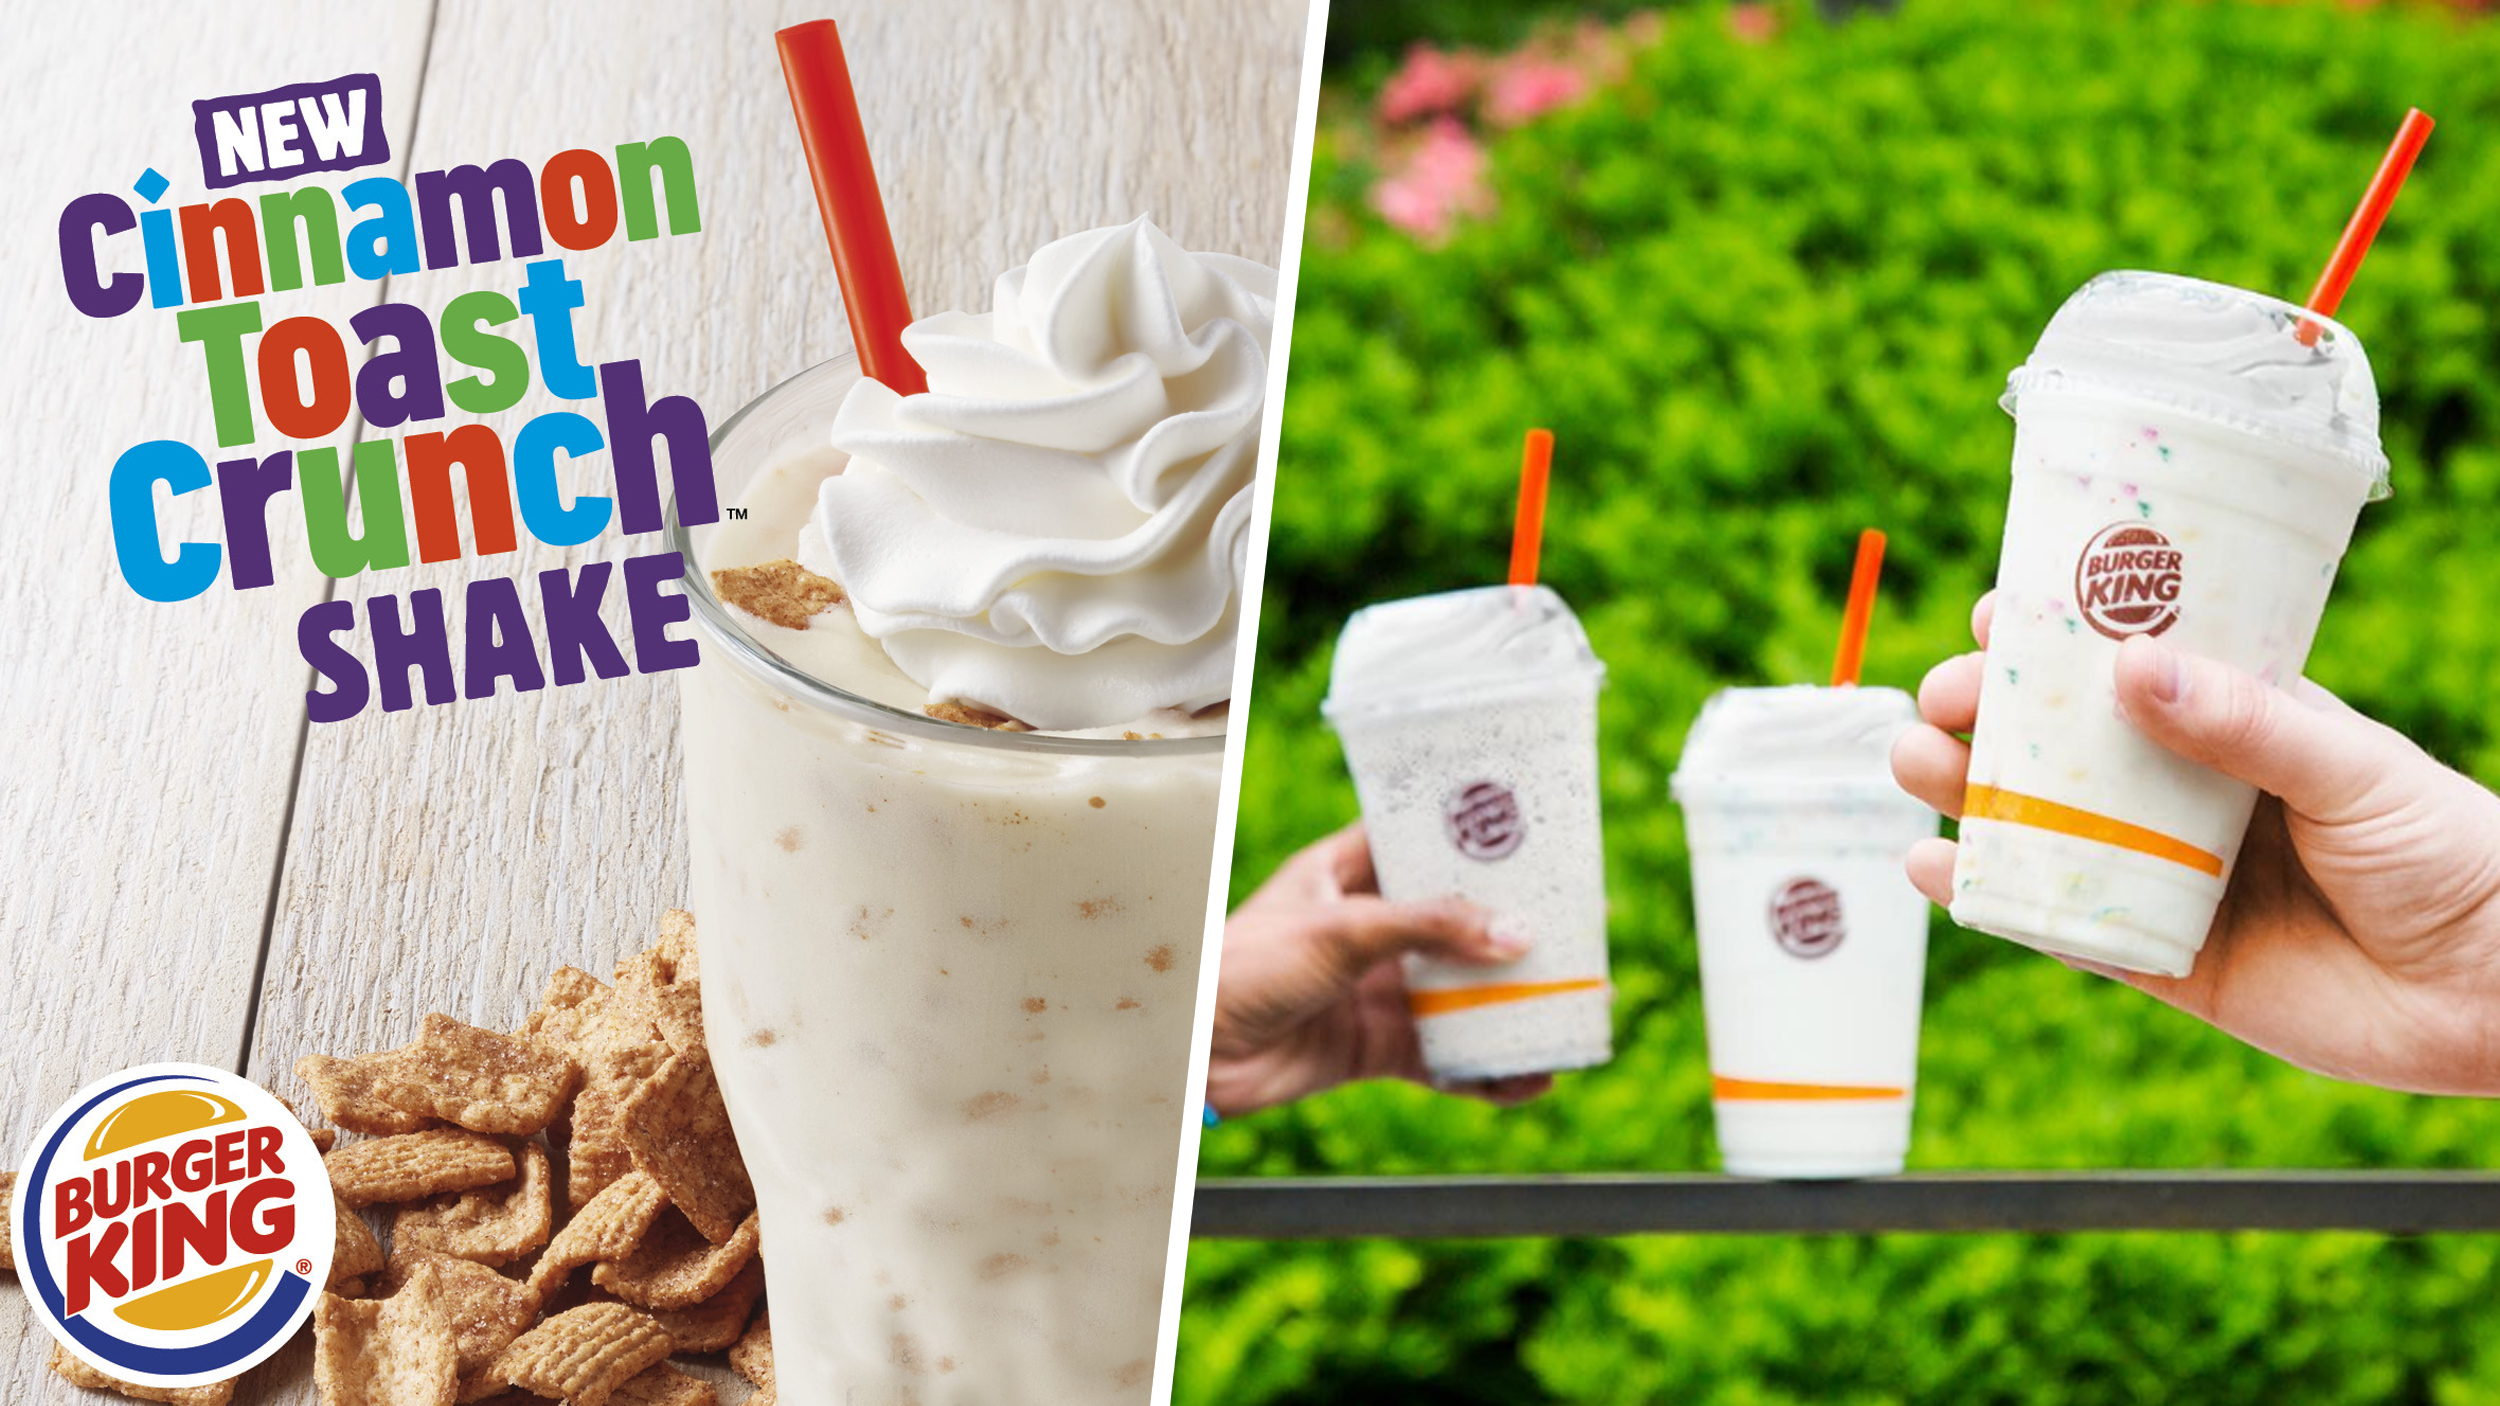 Burger king releases cinnamon toast crunch milkshake today ccuart Image collections